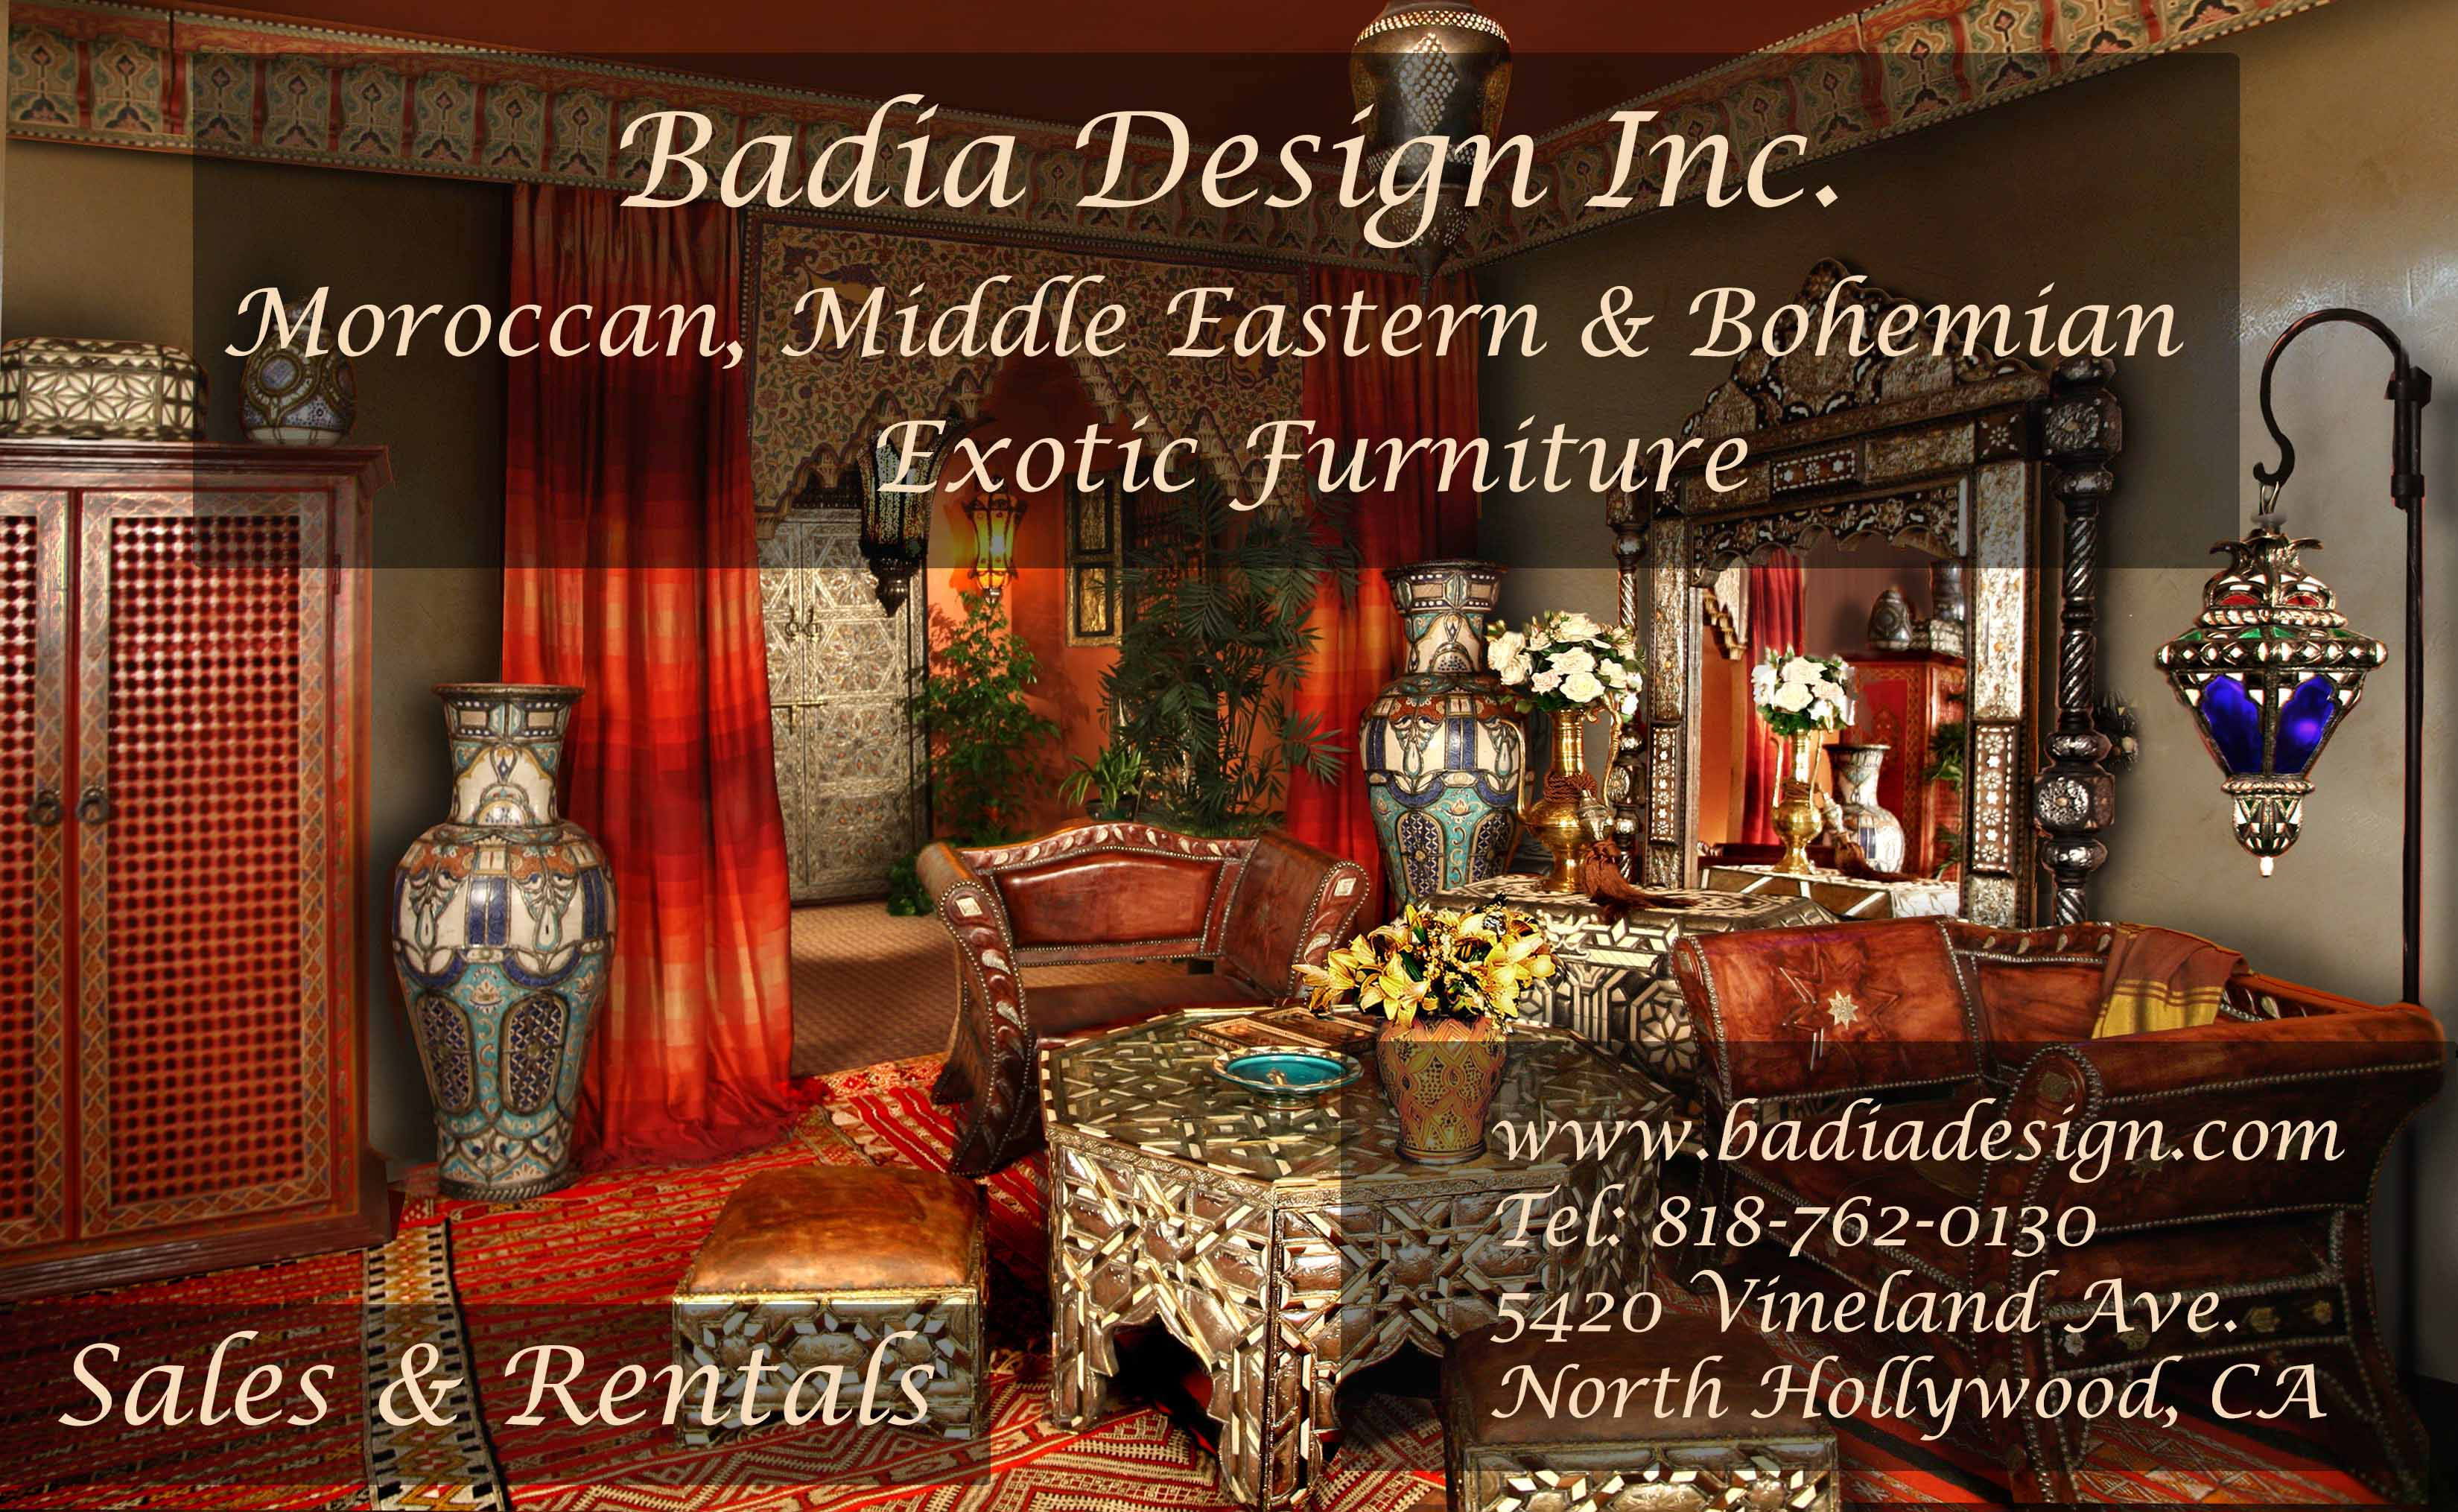 Moroccan furniture, Bohemian style furniture, Bohemian home furniture, Middle Eastern furniture store, Moroccan party rental, Moroccan Home Decor Imports, Moroccan interior decor, Moroccan Furniture and Accessories Los Angeles, best furniture store near me, Moroccan Style Furniture, Middle Eastern style furniture, Bohemian style furniture, Moroccan furniture Los Angeles, furniture sale, Moroccan home decor, wooden tables, chairs, wooden chairs, brass chandeliers, silver chandelier, wedding gifts, Moroccan party rental, Moroccan party rental Los Angeles, living room furniture, Moroccan living room furniture, Moroccan floor tile, water fountain, ceramic plates, ceramic bowls, brass lantern, silver lantern, ceramic novelties, tea glasses, Moroccan tea glasses, pouf, ottoman, Moroccan pouf, Moroccan ottoman, outdoor furniture, Moroccan outdoor furniture, patio furniture, African rugs, Mediterranean style furniture, Mediterranean furniture, Mediterranean home decor, interior design, Moroccan interior design, interior designer, home interior design, home interior designer, dishes, Moroccan tiles, silver plated, gold plated